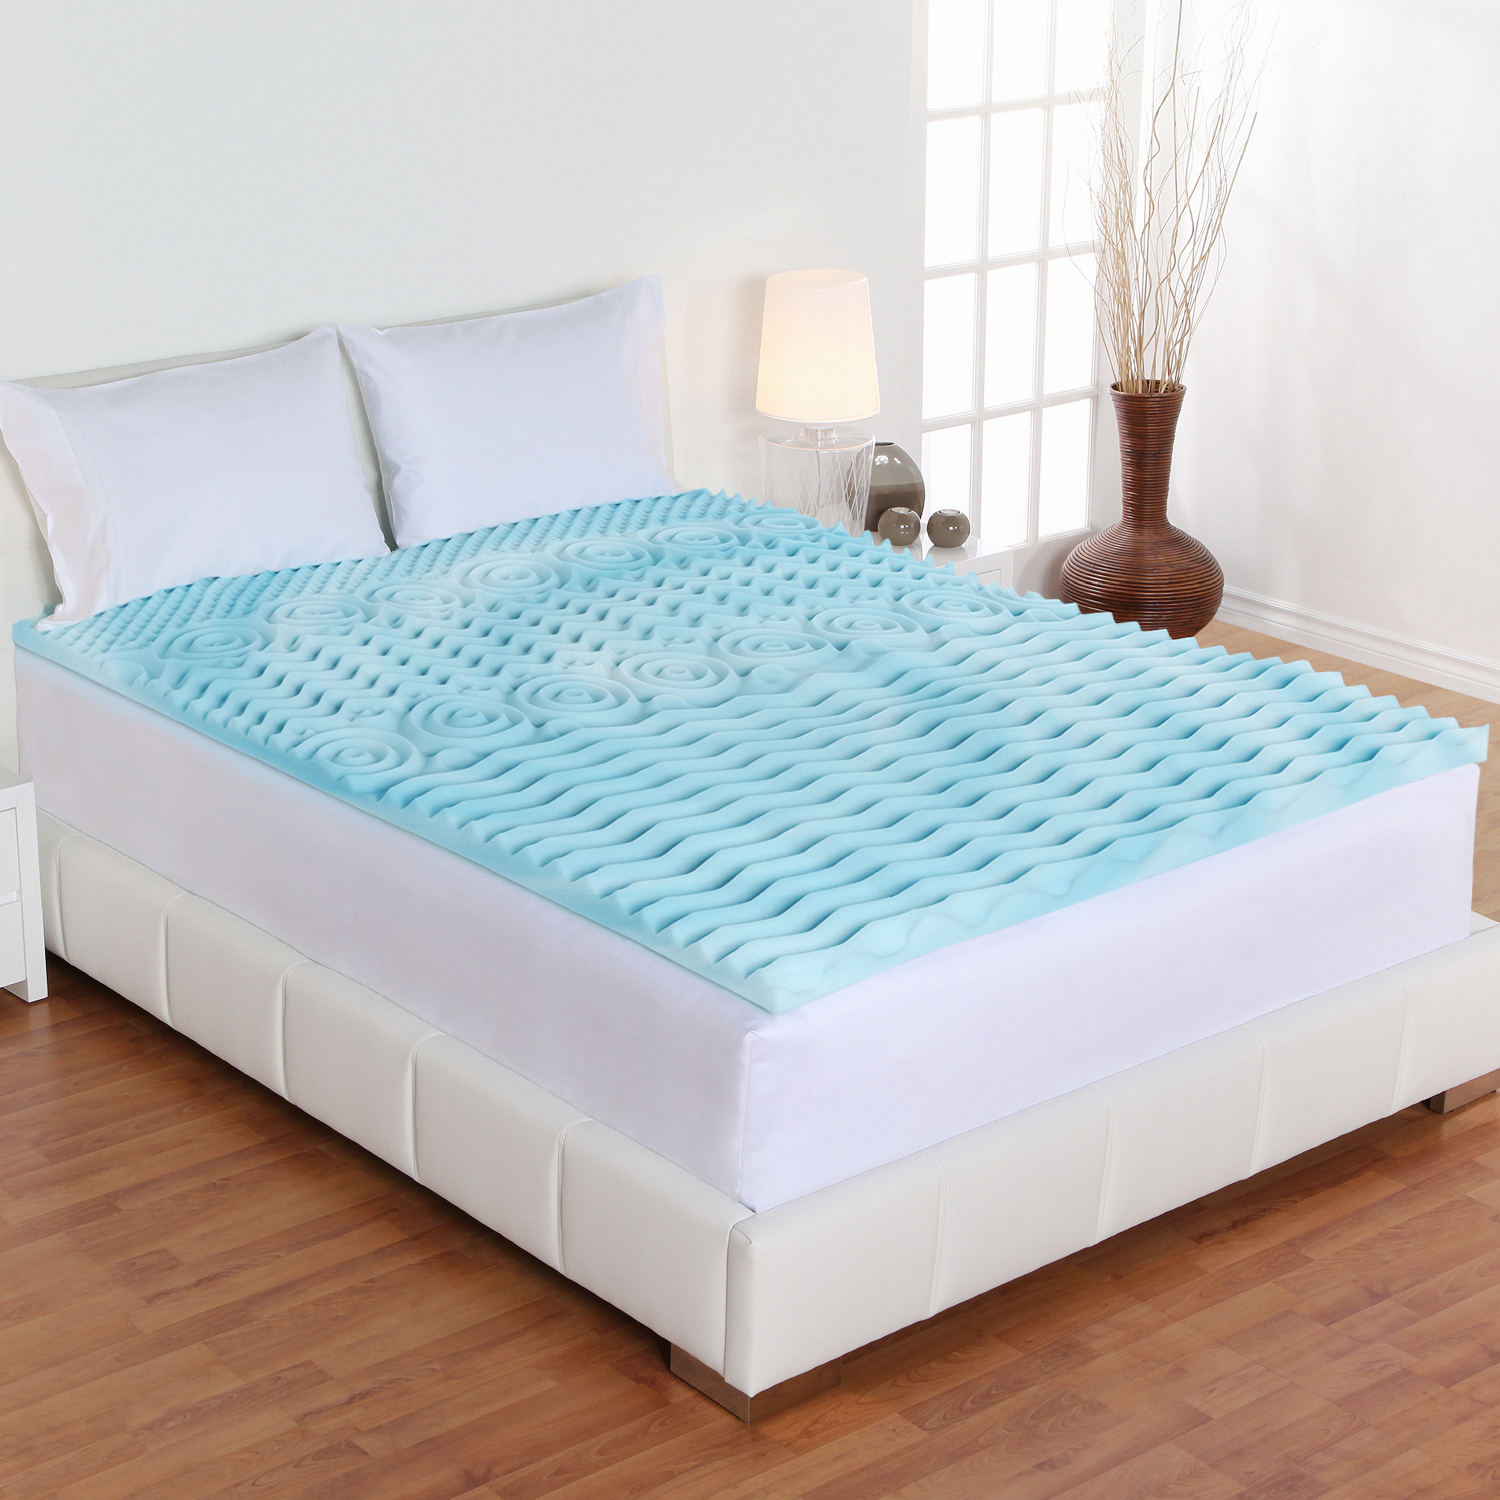 newest 6ab73 dabad Details about Bed Topper Gel Pad Full Size Orthopedic Foam Mattress Firm 2  Inch Cover For Back